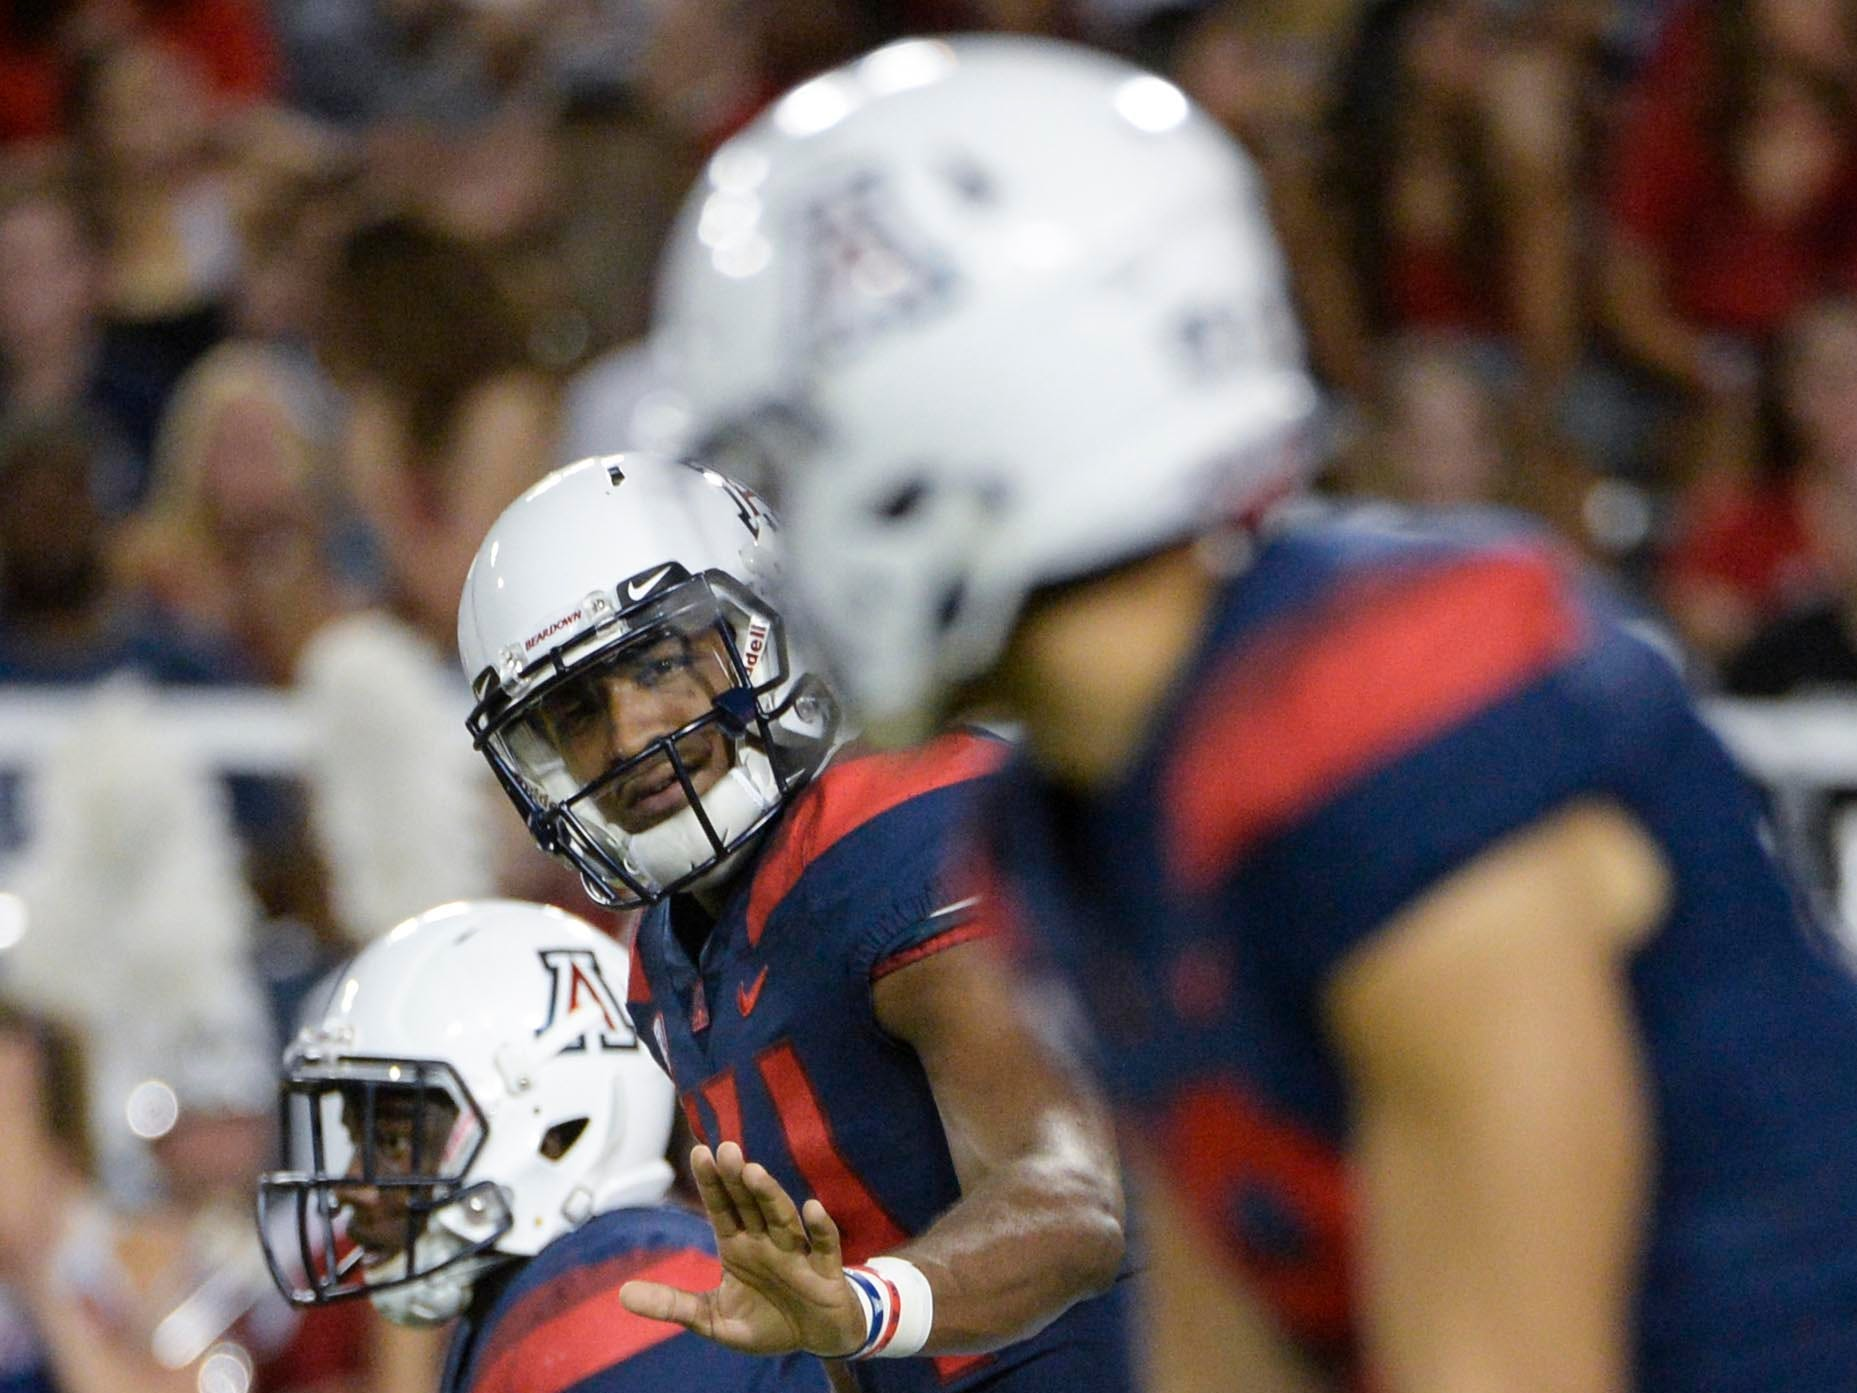 Sep 29, 2018; Tucson, AZ, USA; Arizona Wildcats quarterback Khalil Tate (14) signals during the first half against the Southern California Trojans at Arizona Stadium. Mandatory Credit: Casey Sapio-USA TODAY Sports